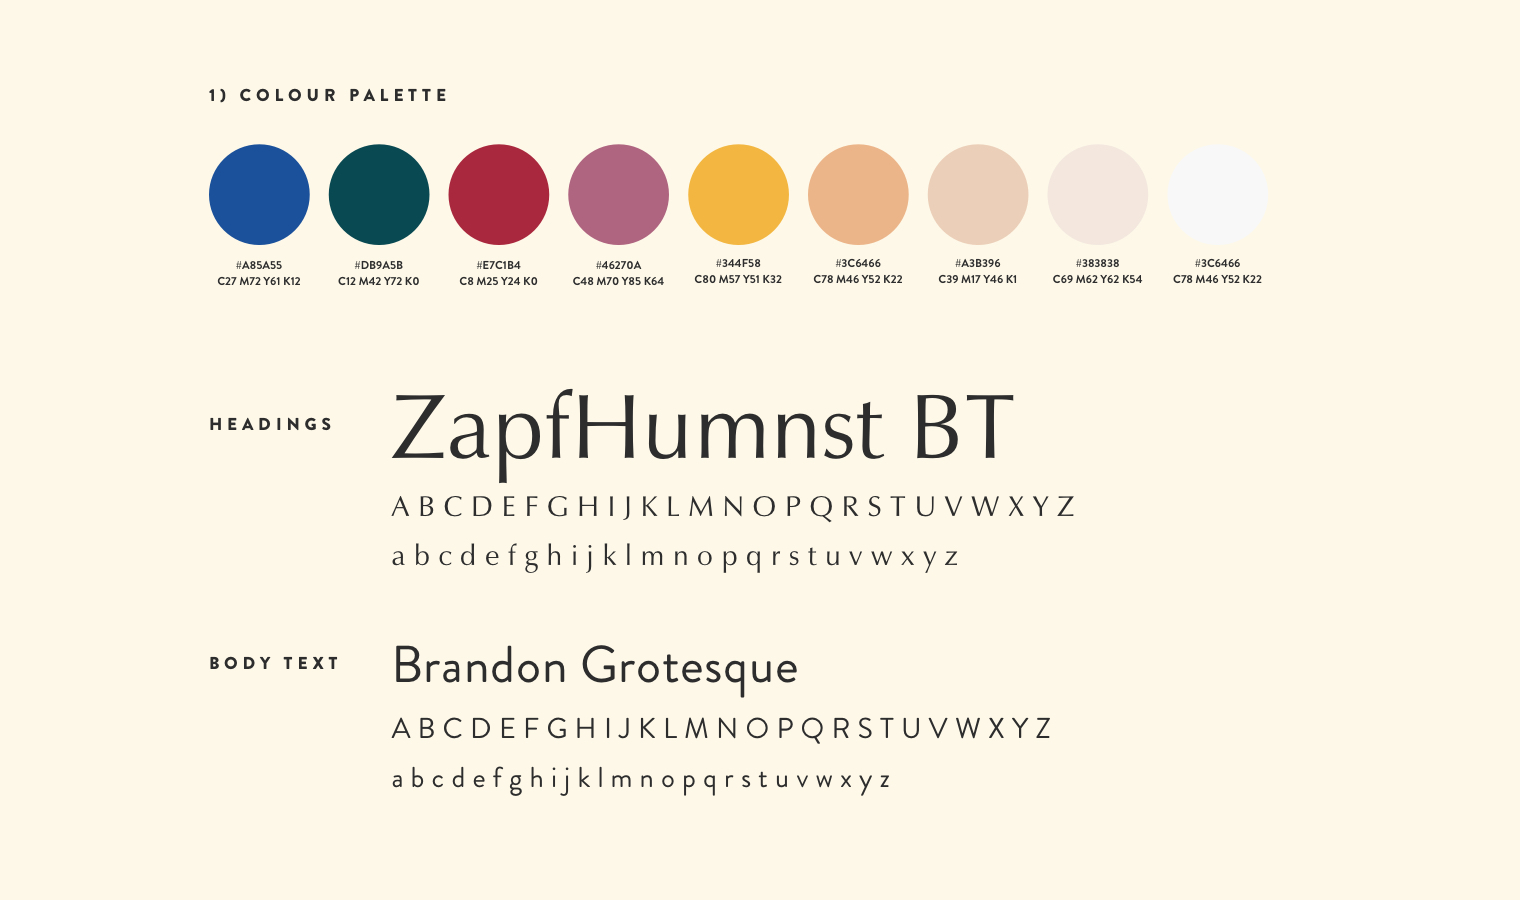 Fonts and Logos for Brand Guidelines by Ethical Design Agency Betsy & Francis